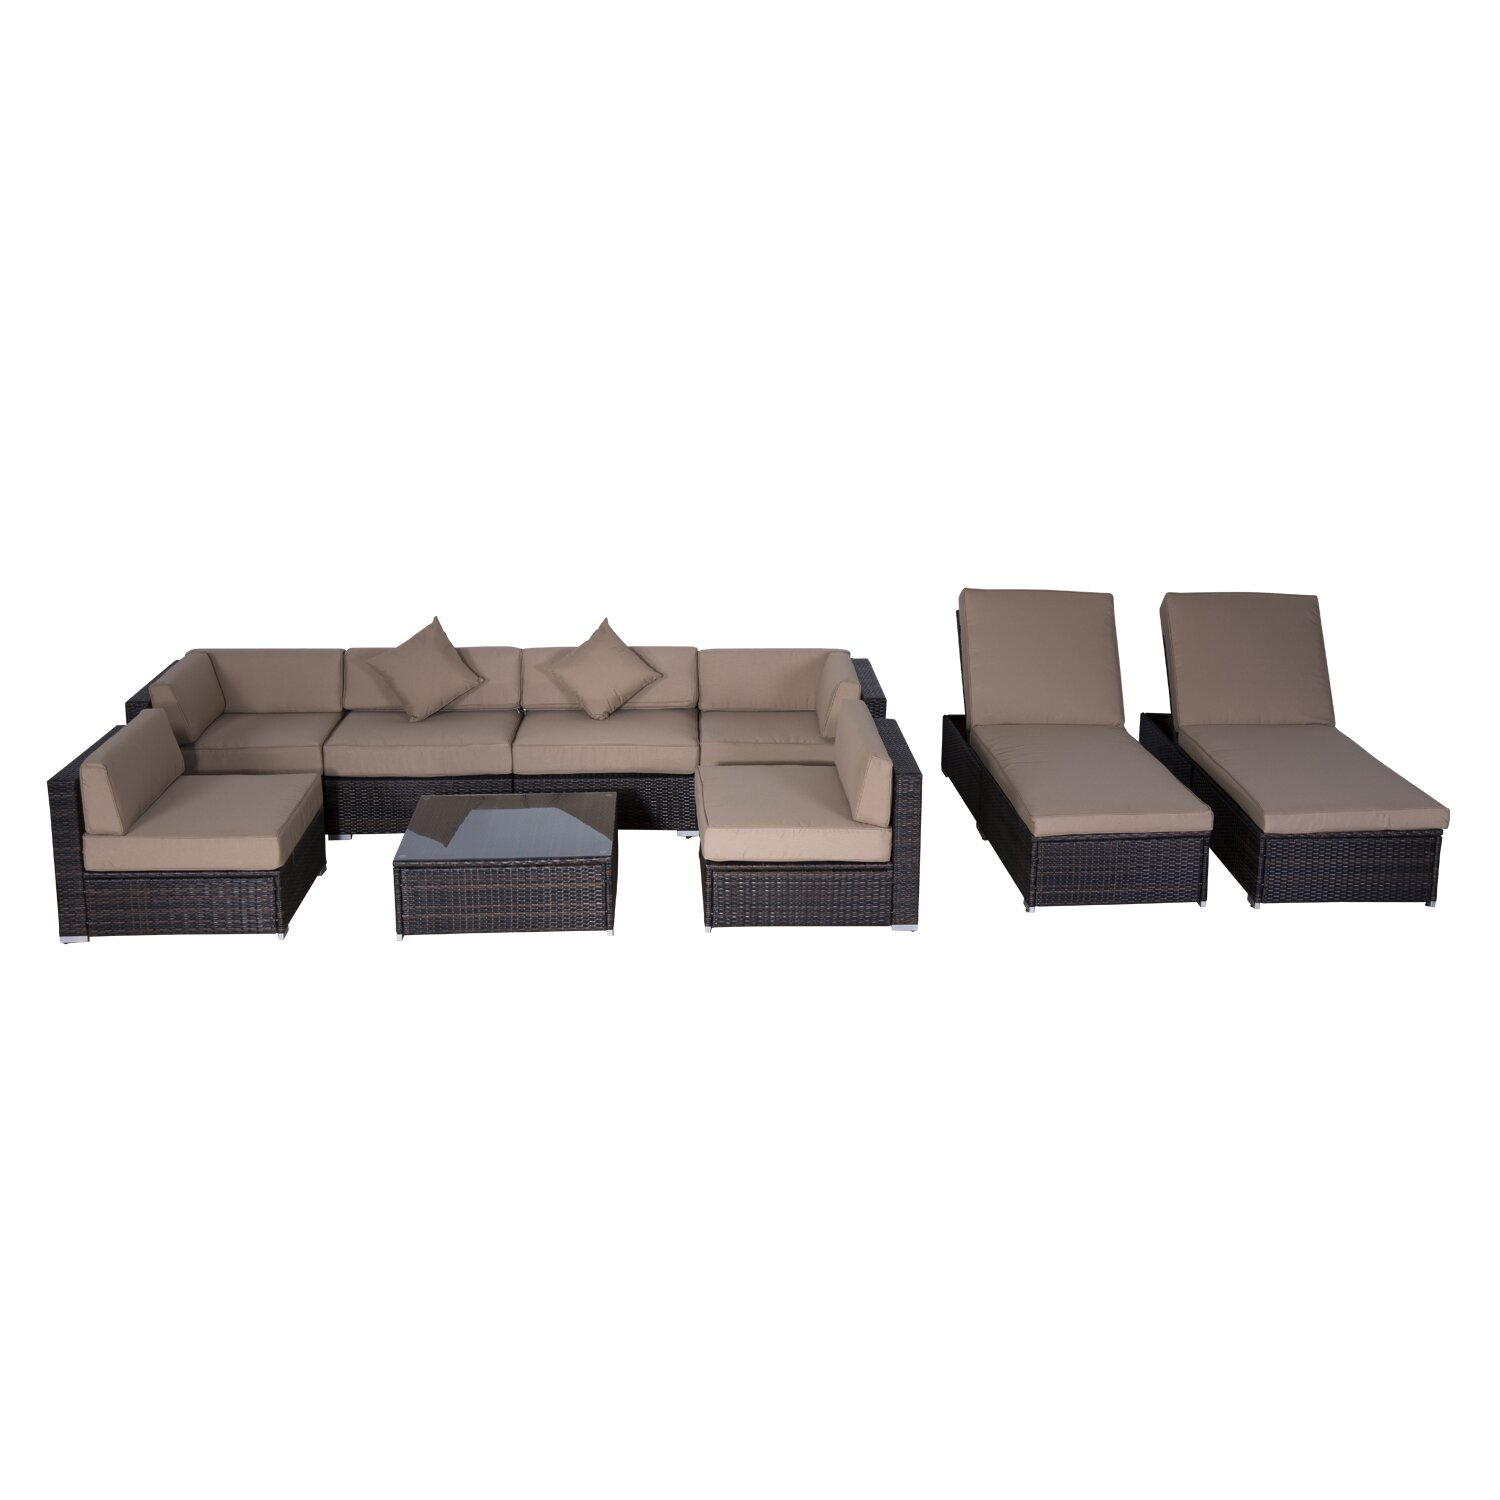 Outsunny Outsunny 9 Piece Seating Group with Cushions & Reviews